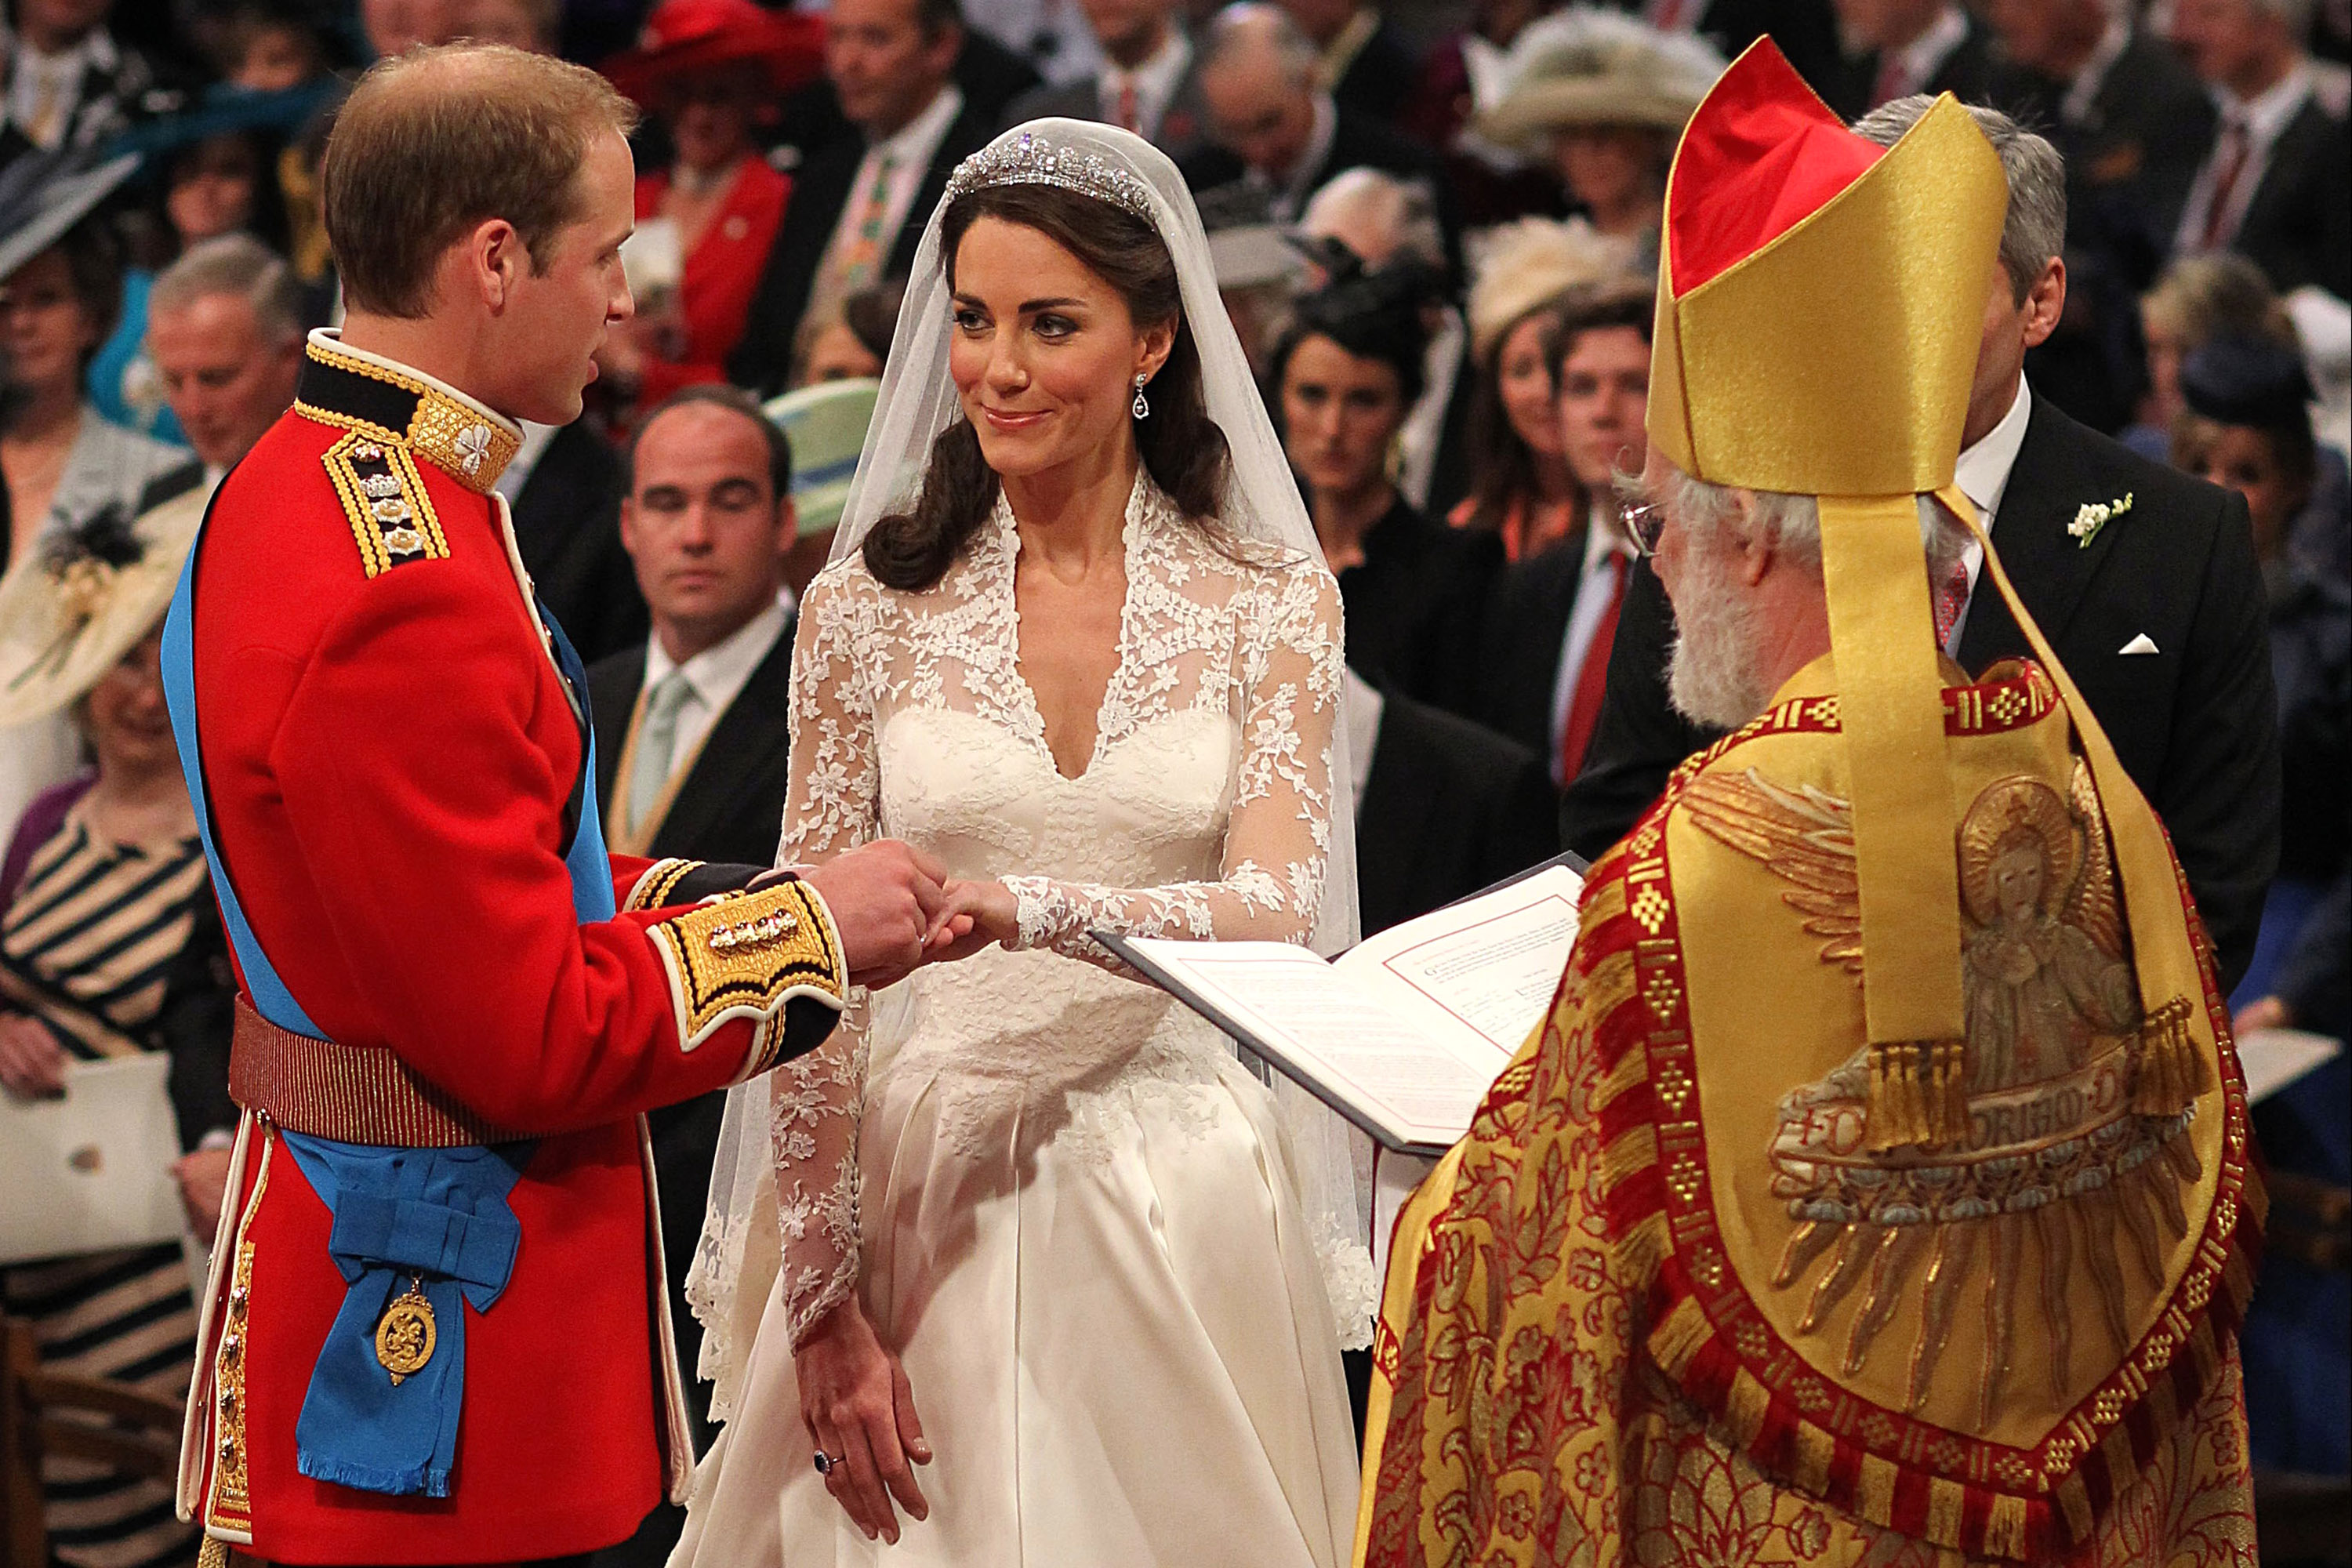 Prince William exchanges rings with his bride Catherine Middleton in front of the Archbishop of Canterbury Rowan Williams inside Westminster Abbey in London, England on April 29, 2011.    (Photo by Dominic Lipinski - WPA Pool/Getty Images)